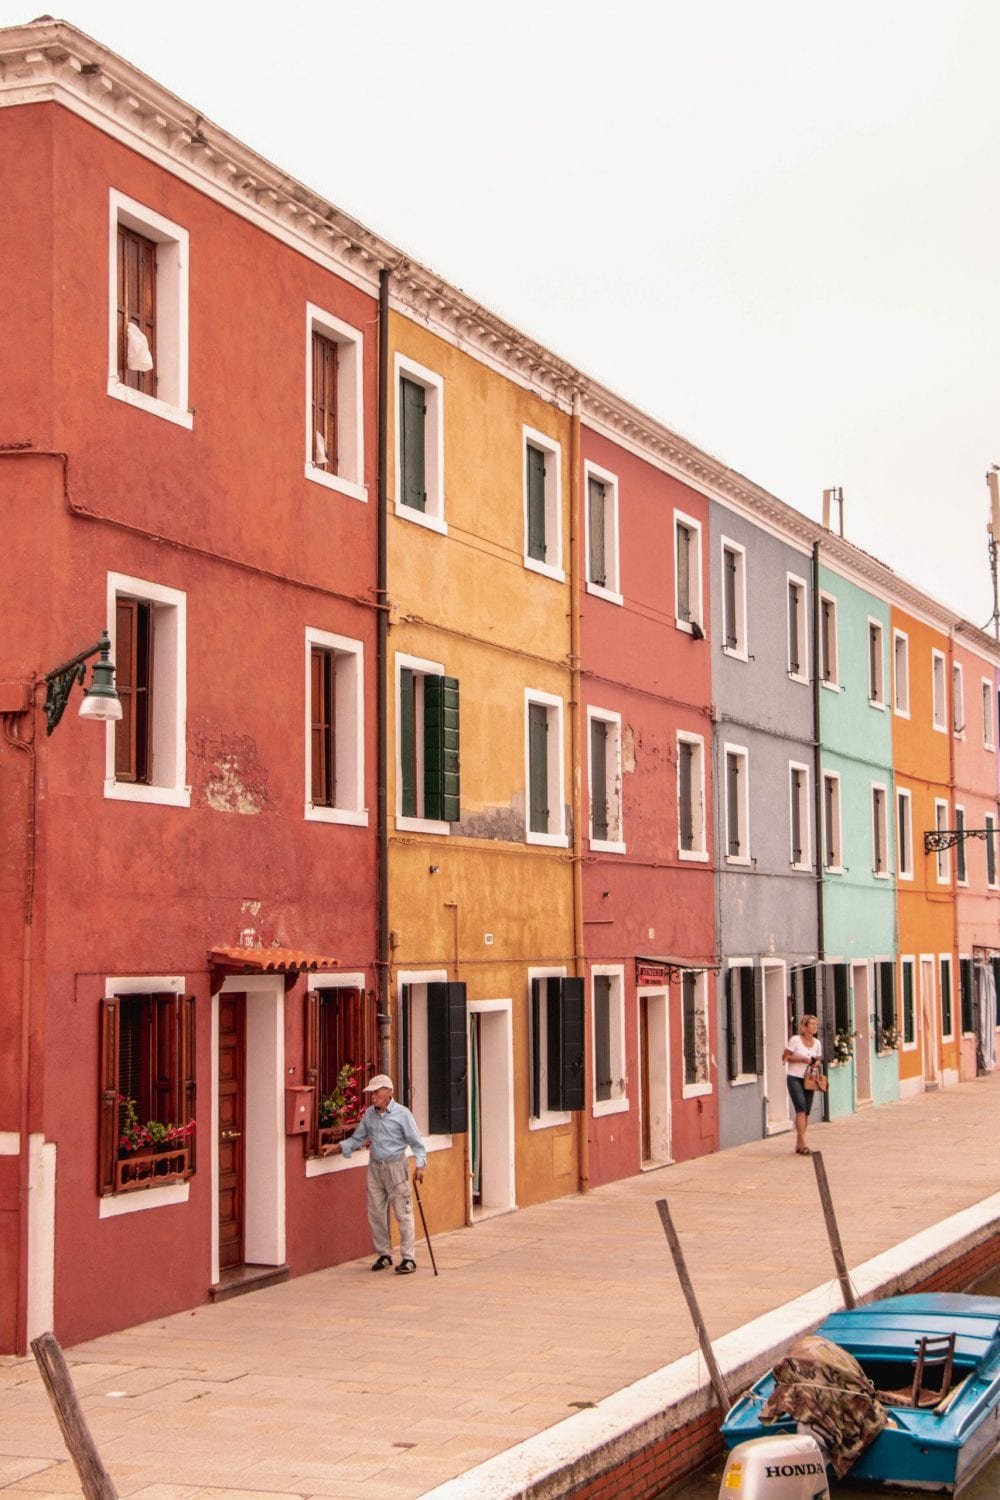 A row of colorful houses in Burano, Italy